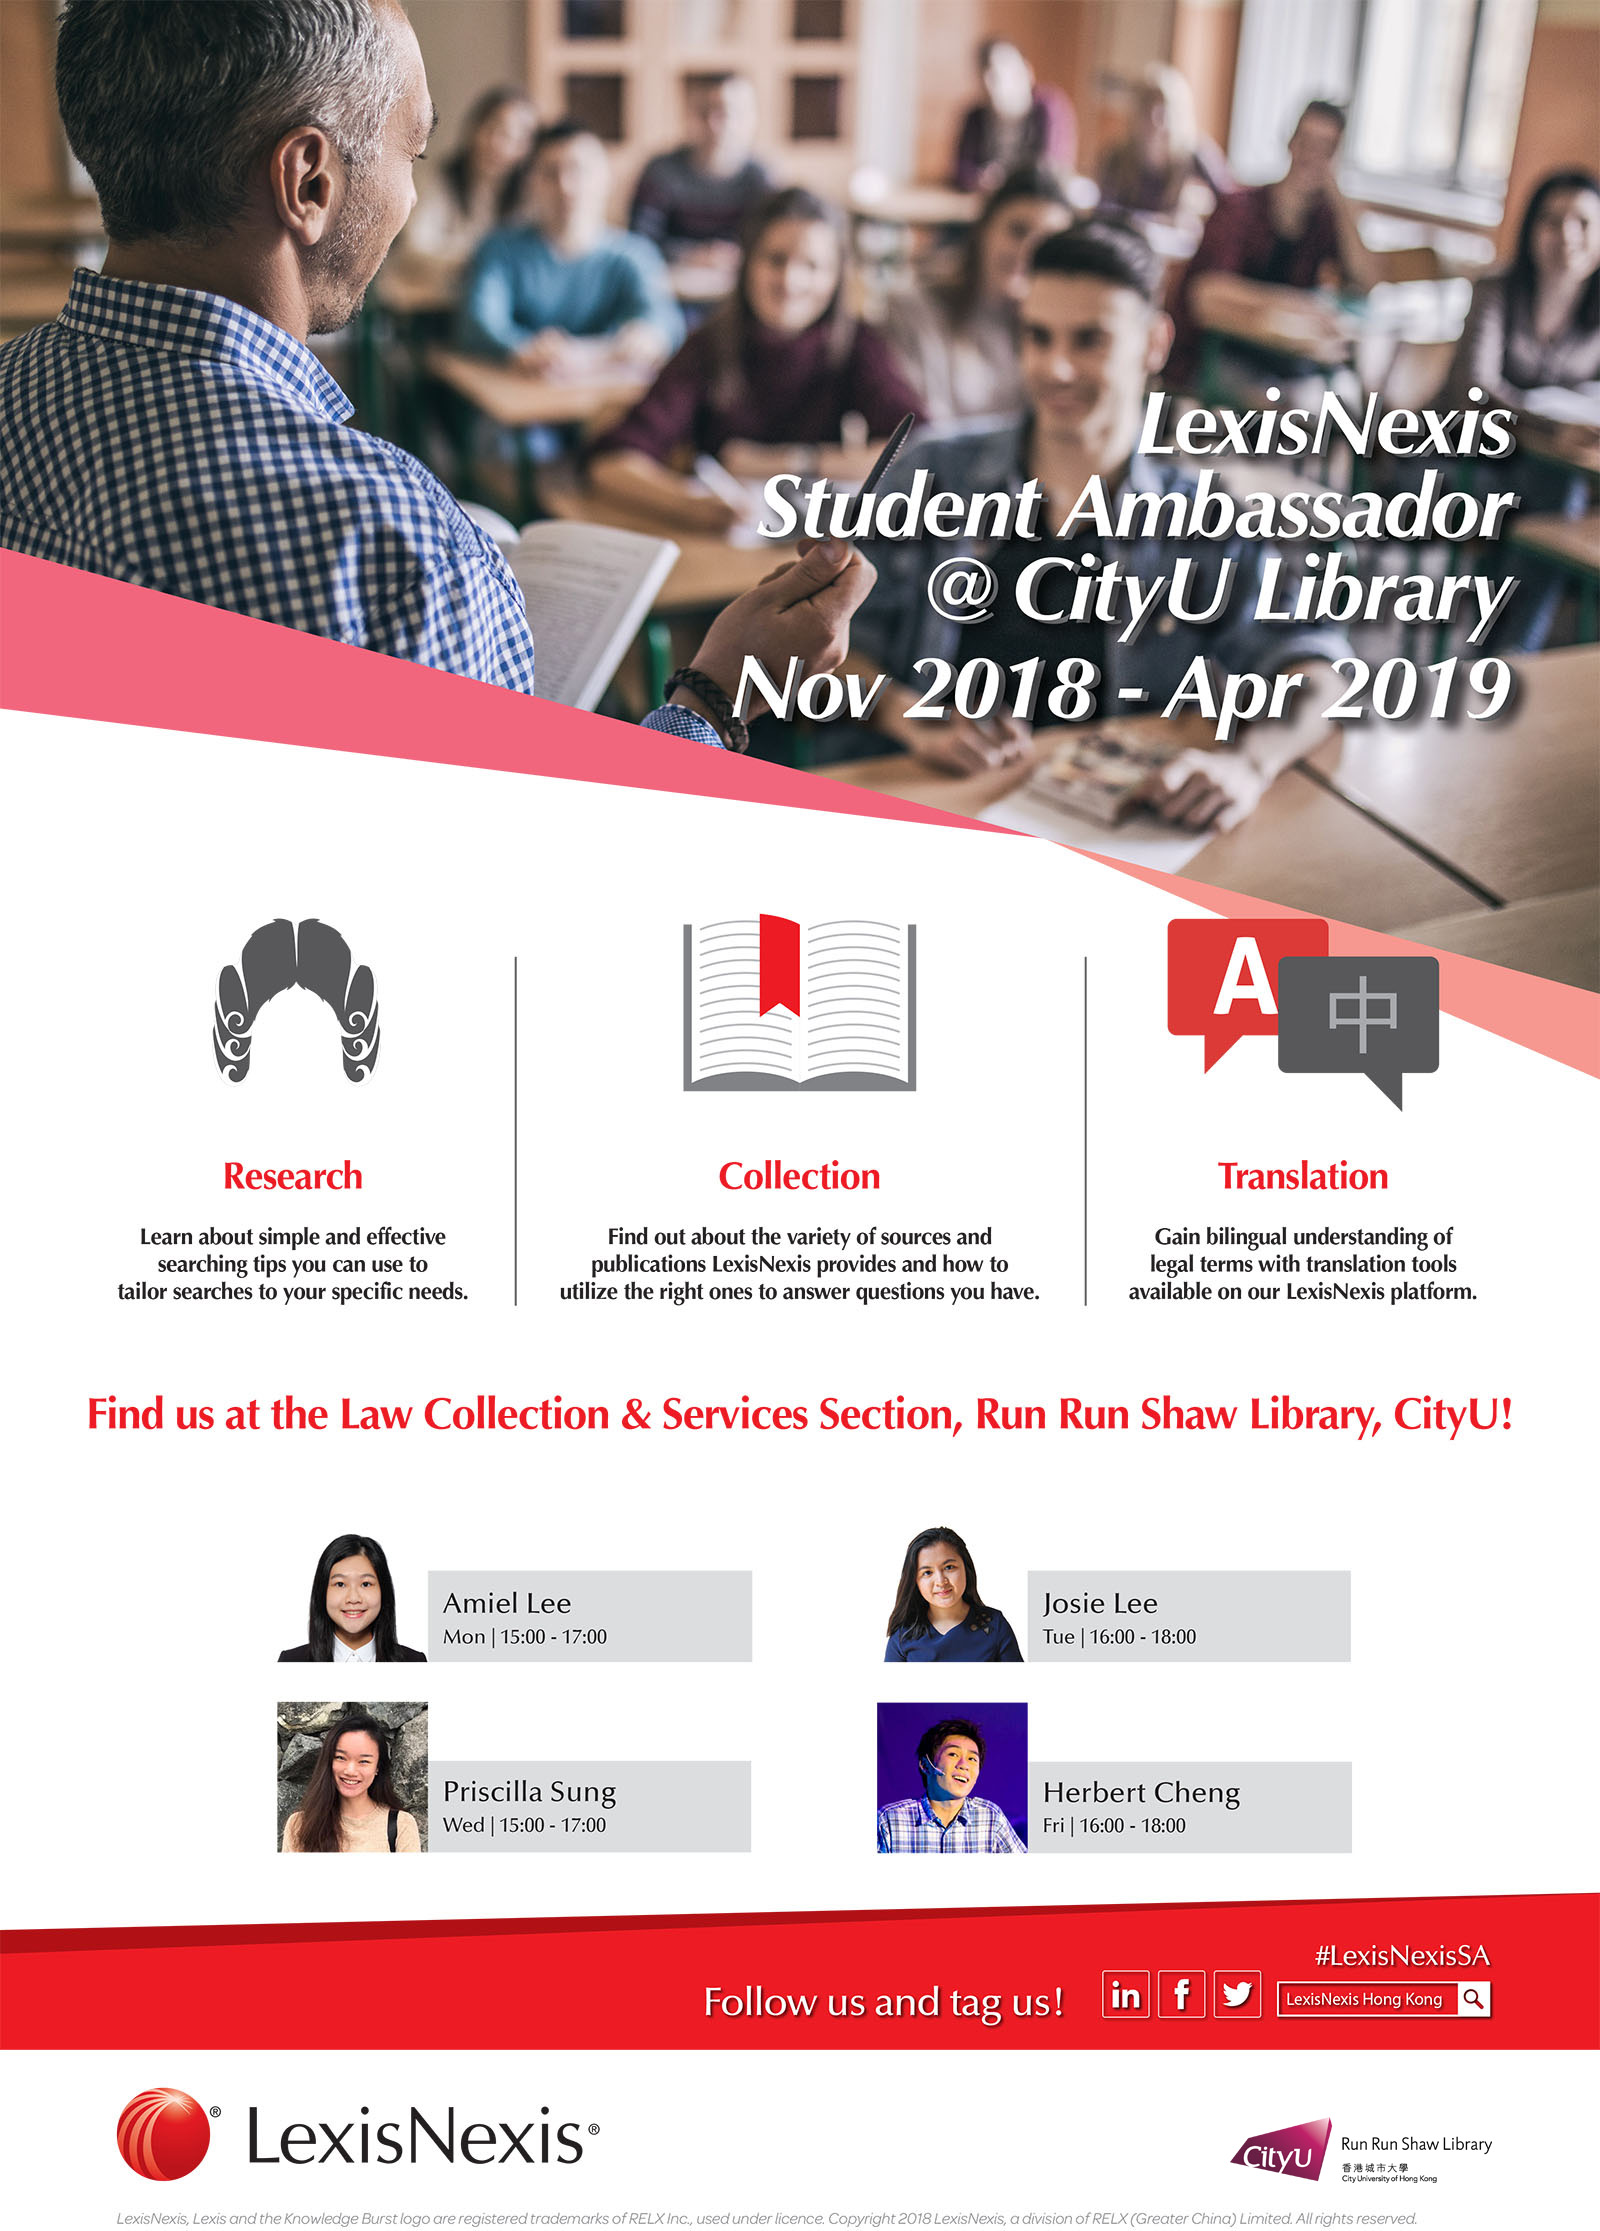 LexisNexis Student Ambassador @ CityU Library resumes in Semester B. Check out the new schedule.